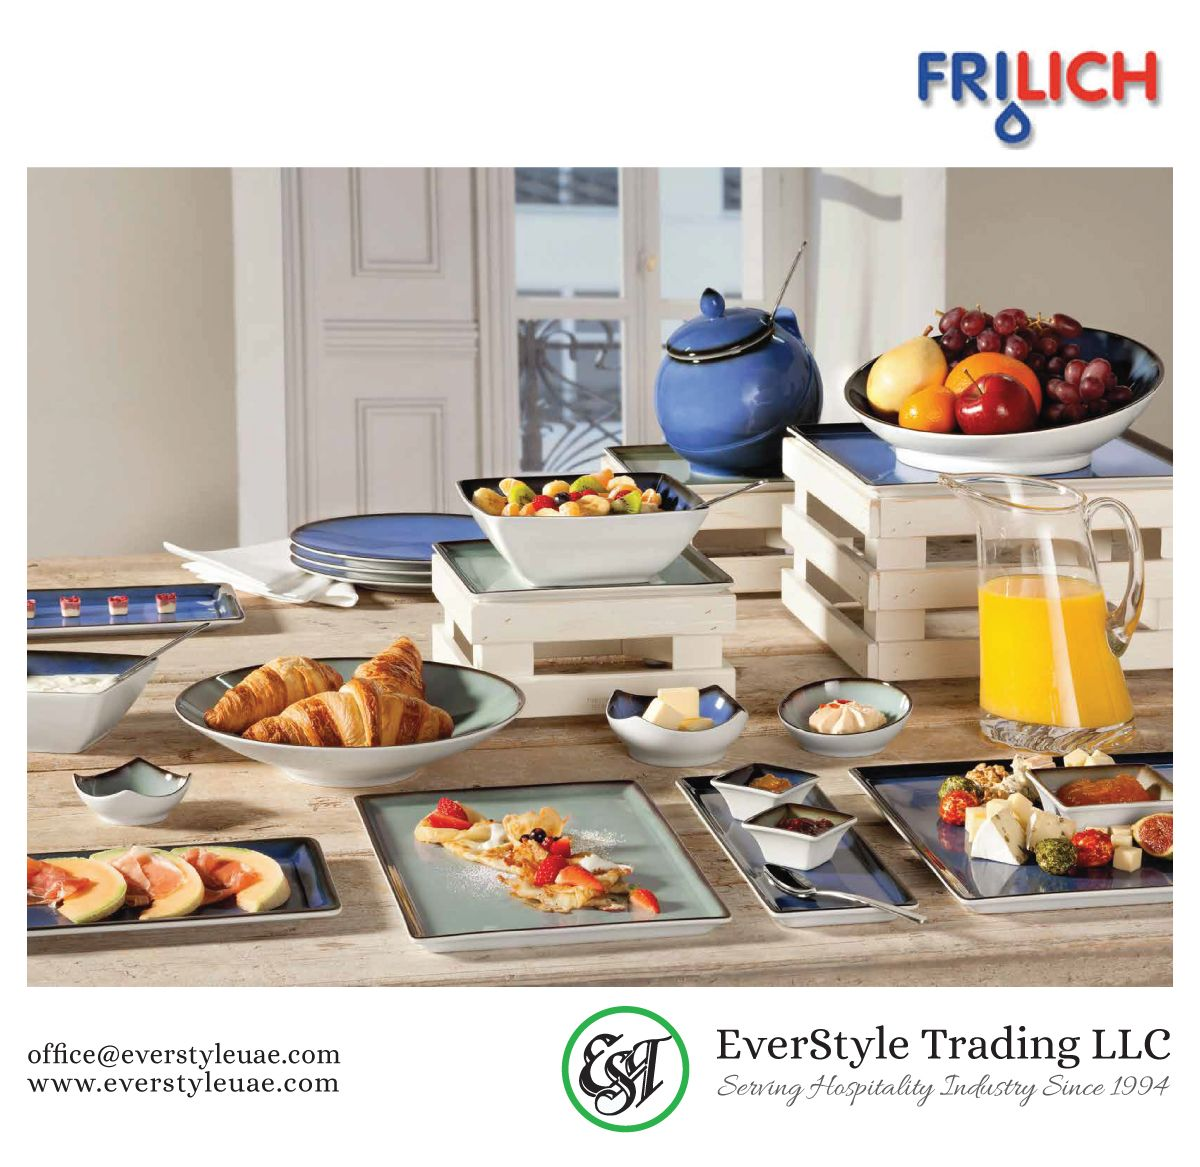 FRILICH, this new buffet concept in the sense of a challenging